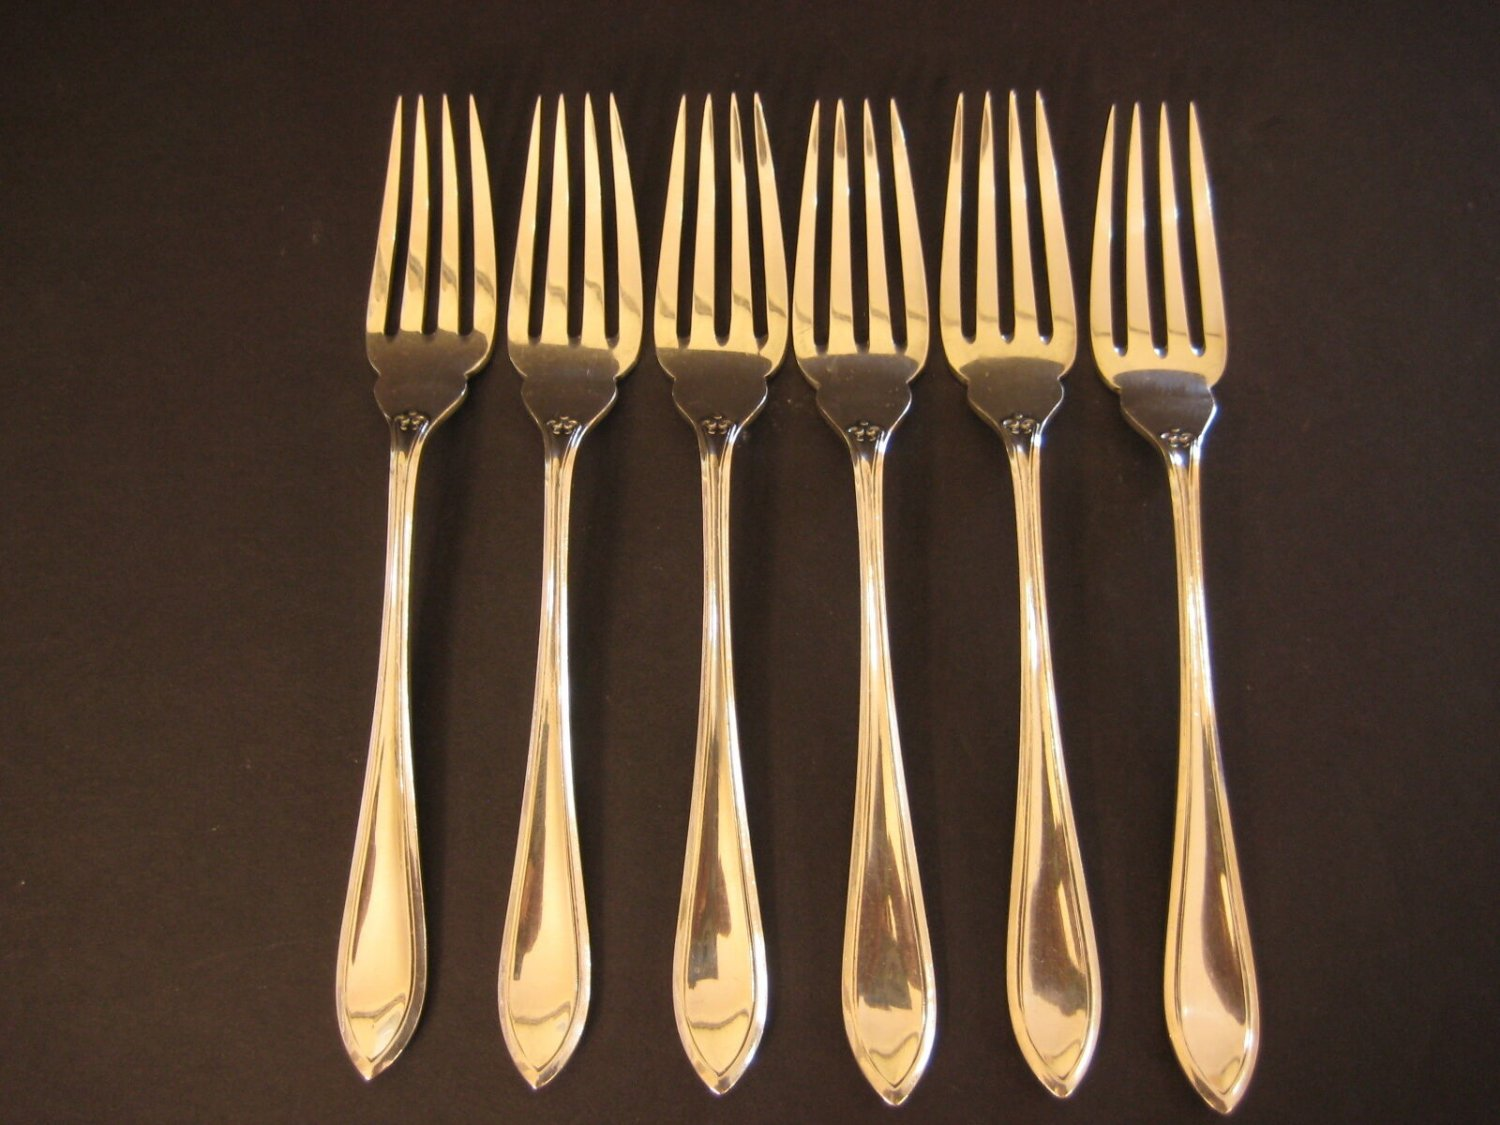 "Set Of 6 Antique Rd 686611 Silver Plate Forks, 6 1/2"" Long (Rare)"